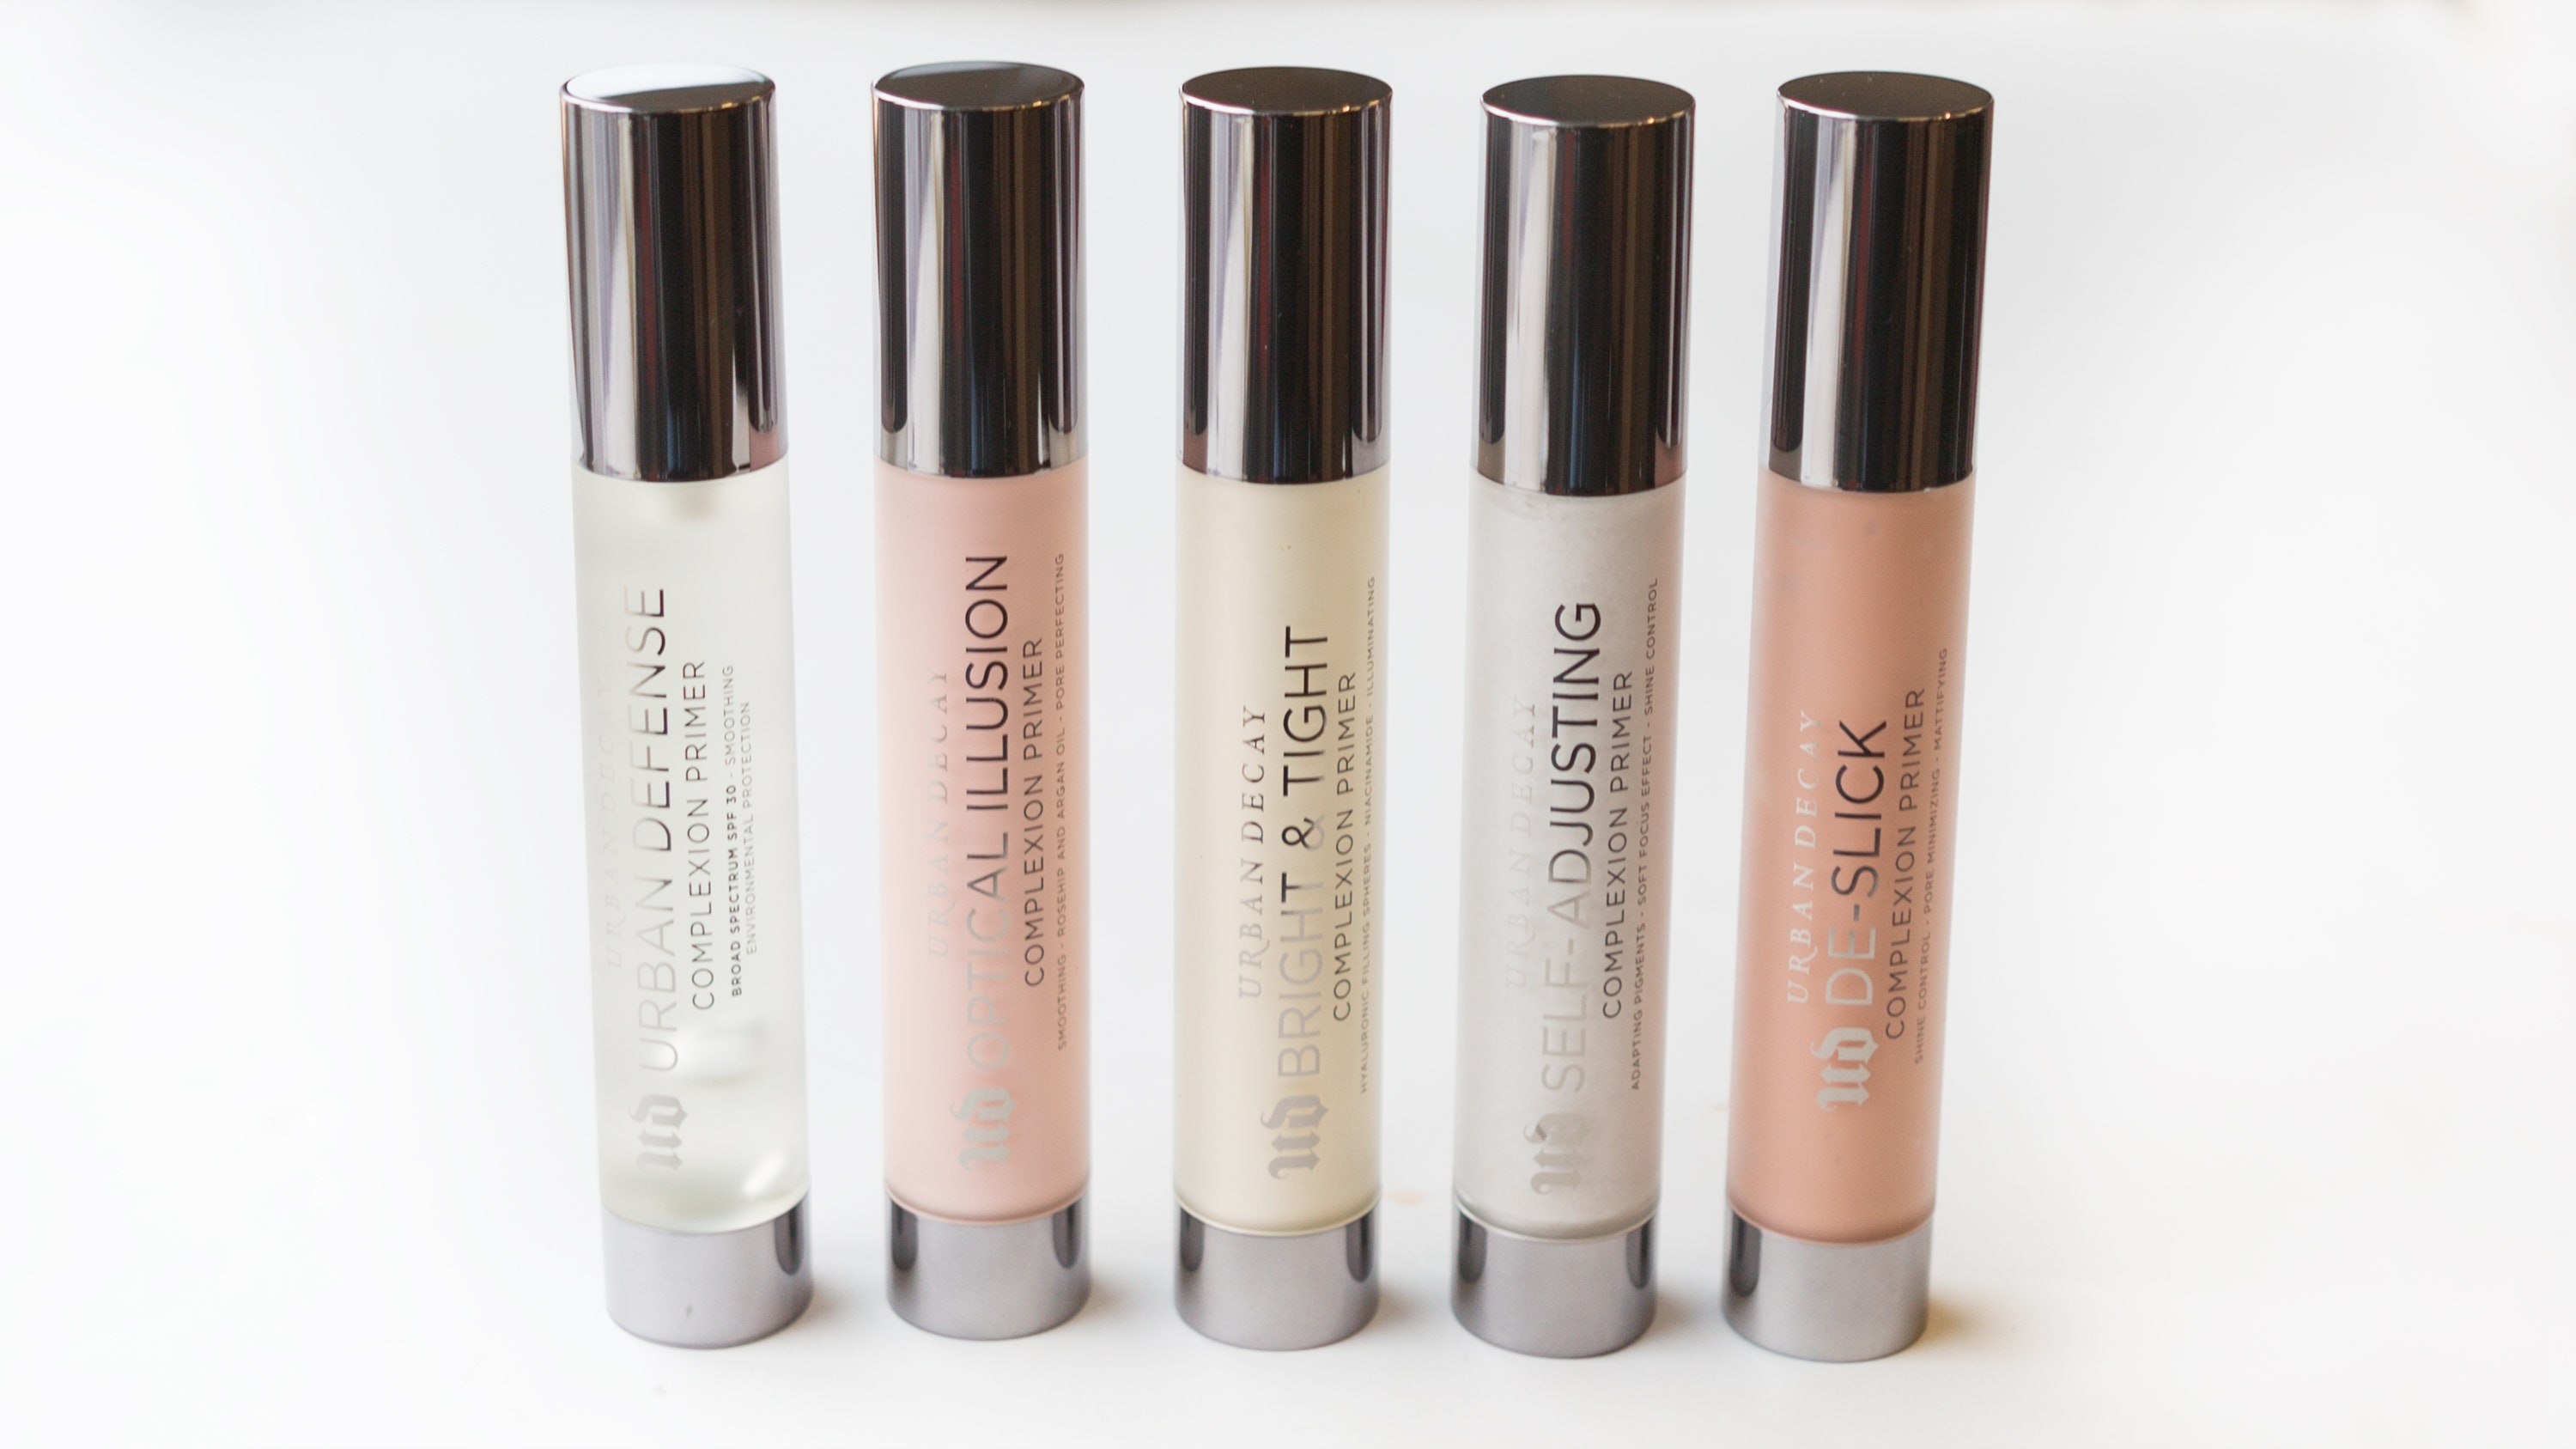 urban decay face primer review